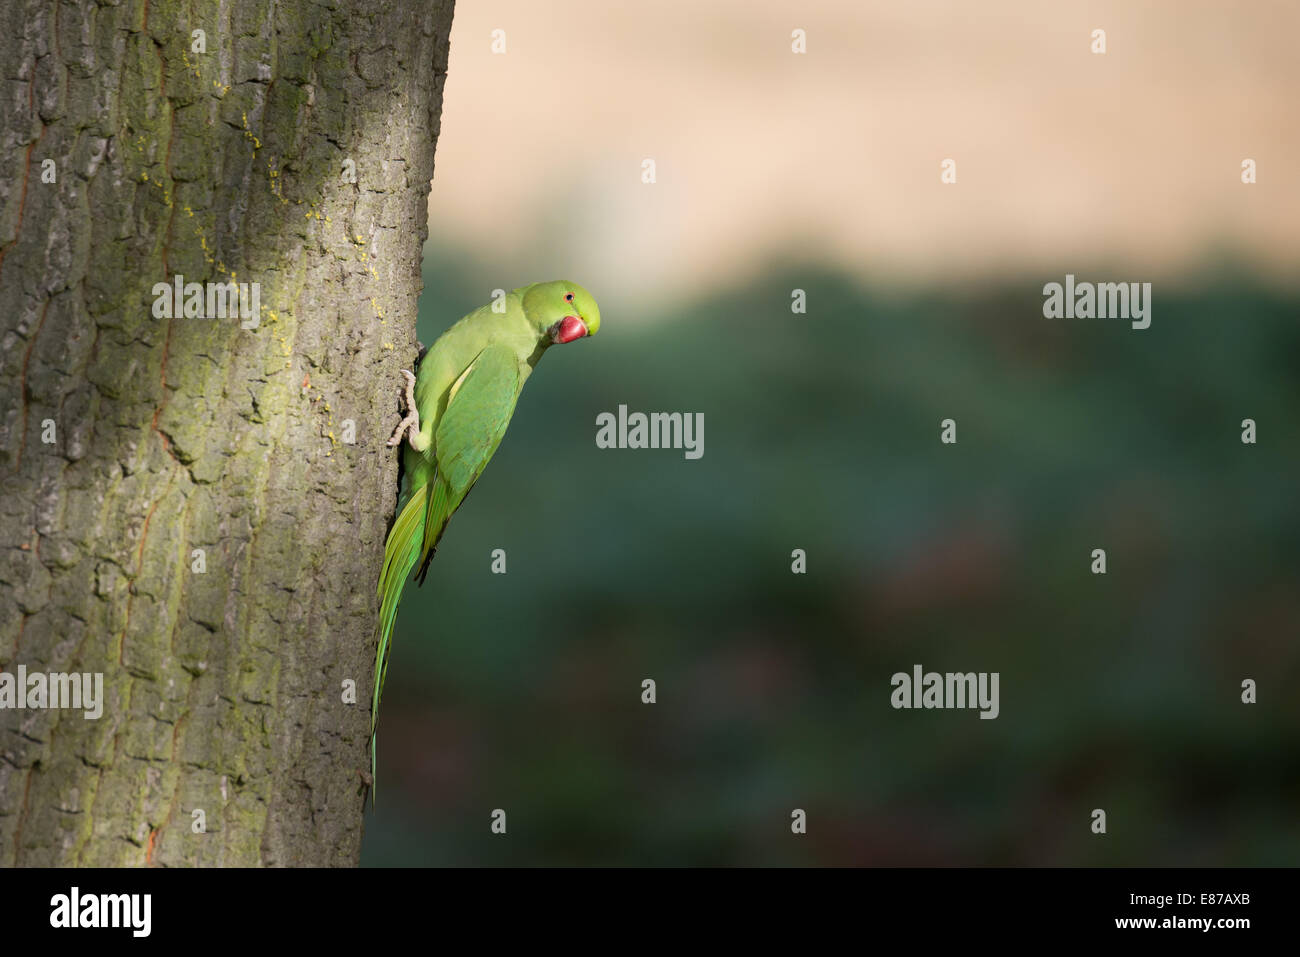 Ring-necked Parakeet on a tree trunk, Richmond Park, London. - Stock Image